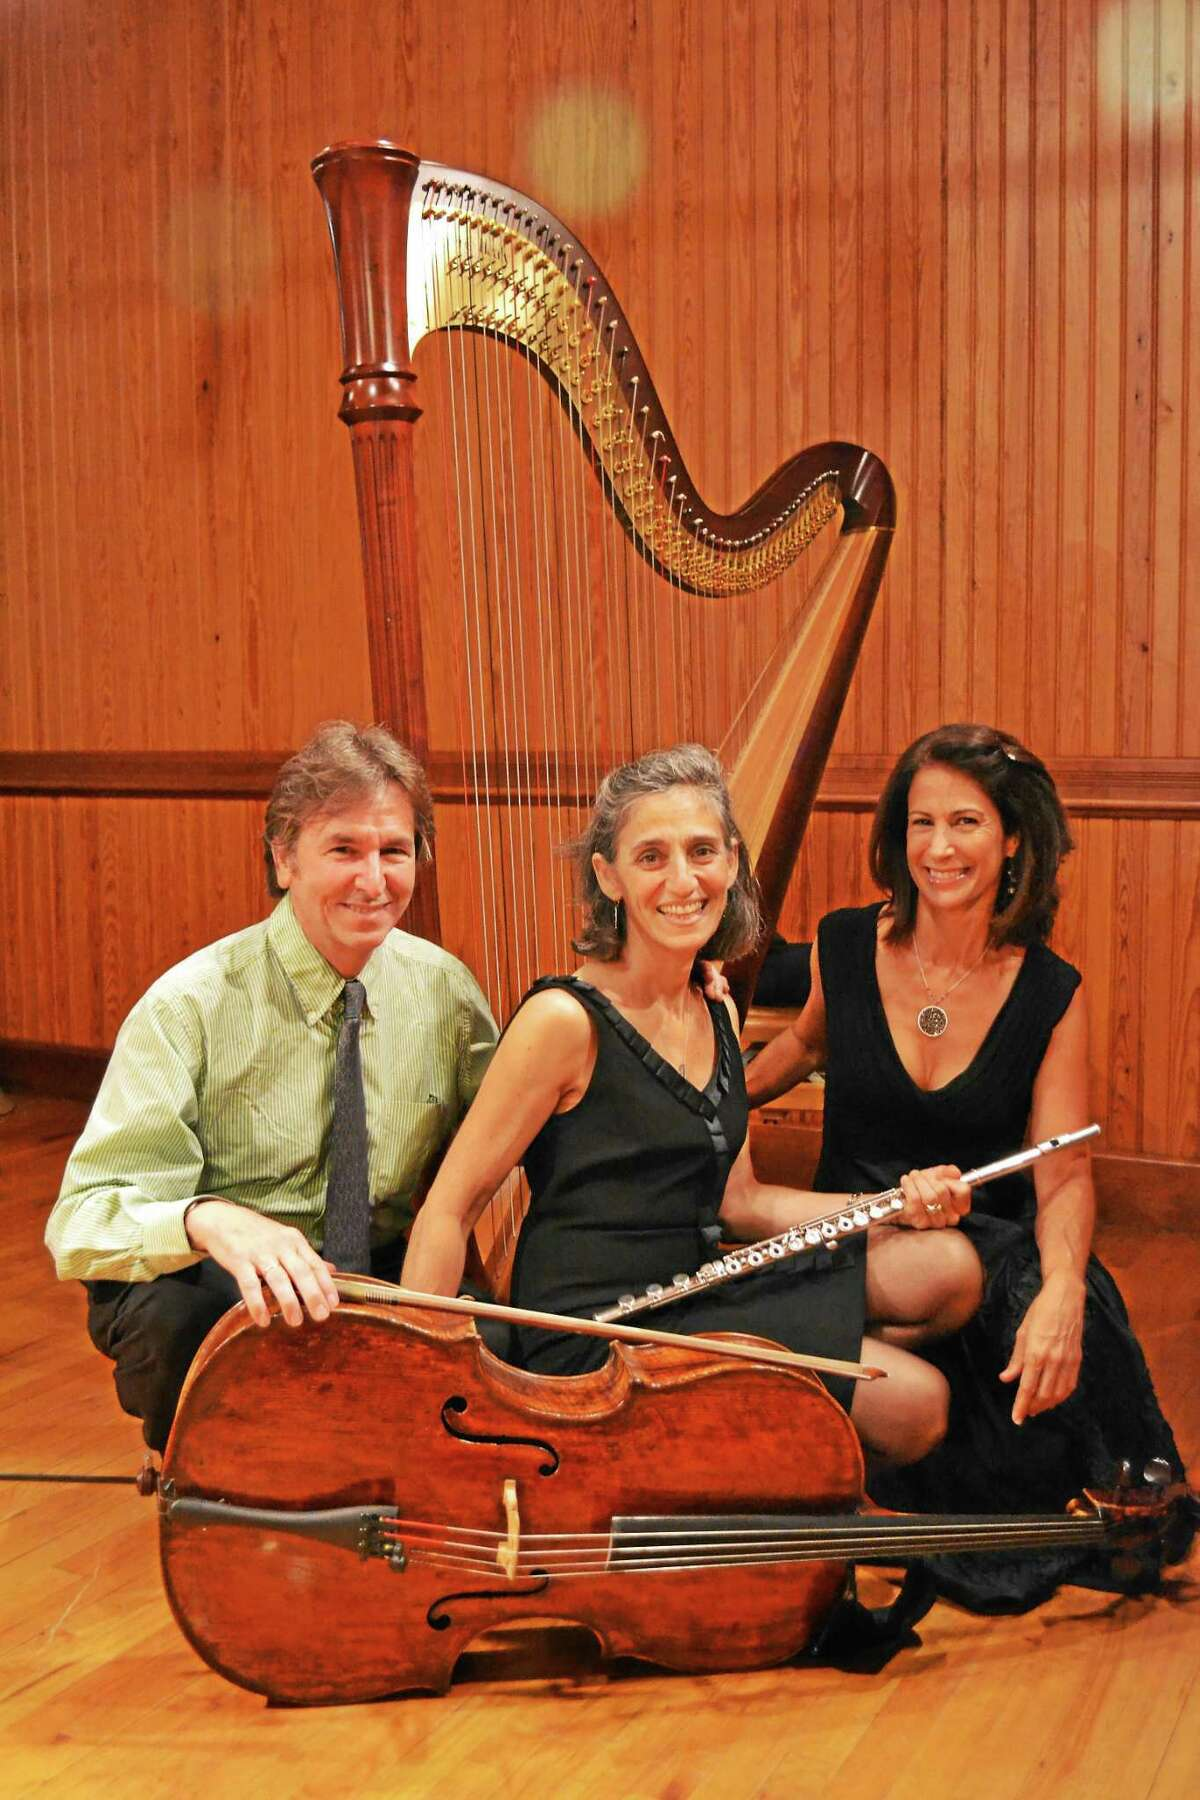 Photo courtesy of the Sherman Chamber Ensemble Above, from left, Sherman Chamber Ensemble Artistic Director and cellist, Eliot Bailen with flutist Susan Rotholz and harpist Stacey Shames.